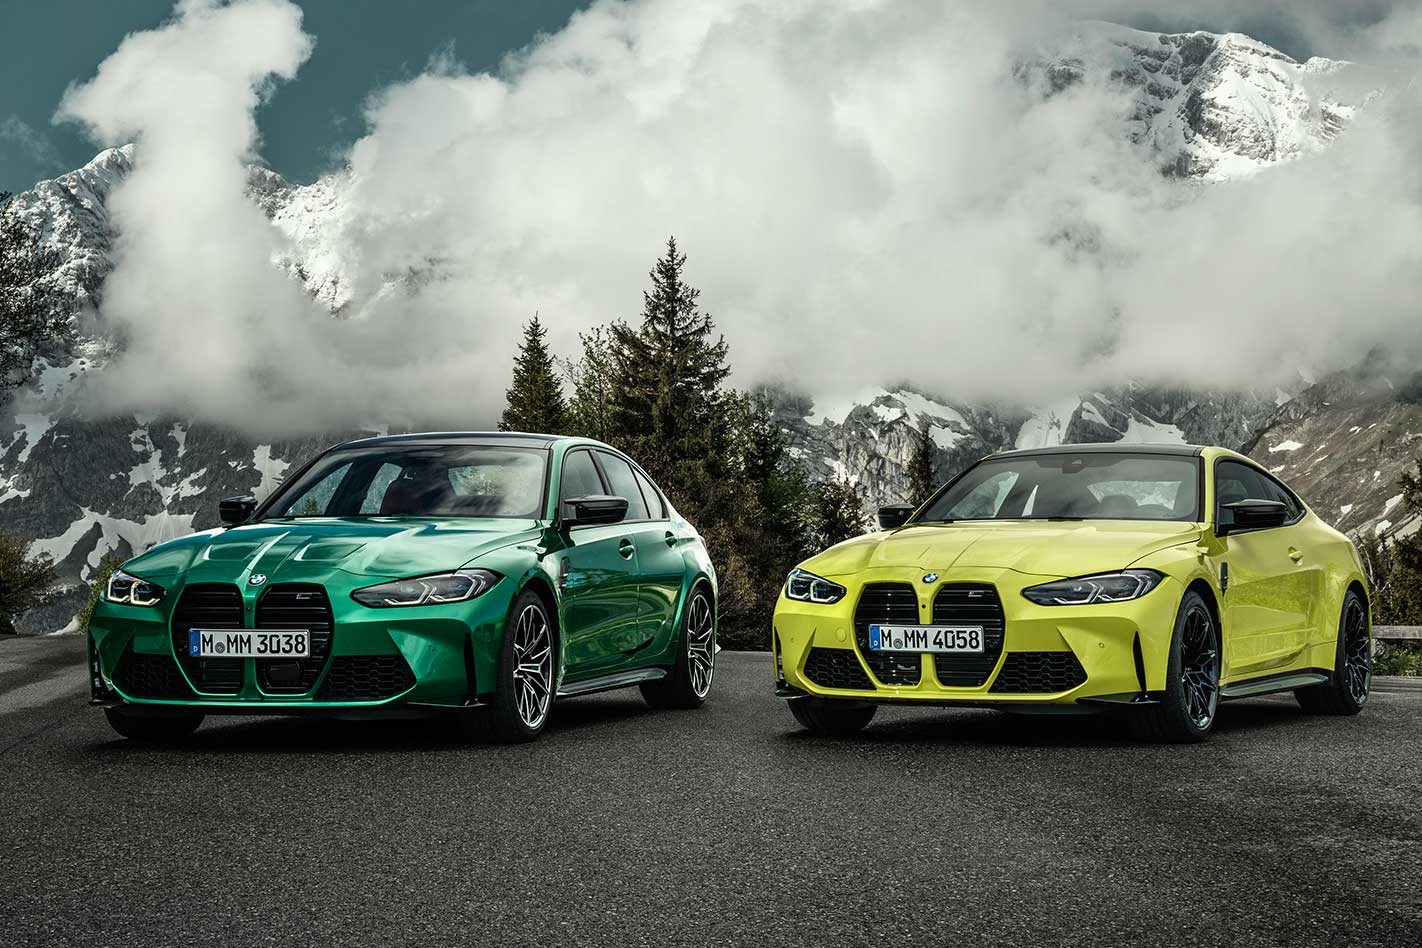 2021 Bmw M3 And M4 Specs And Design Preview